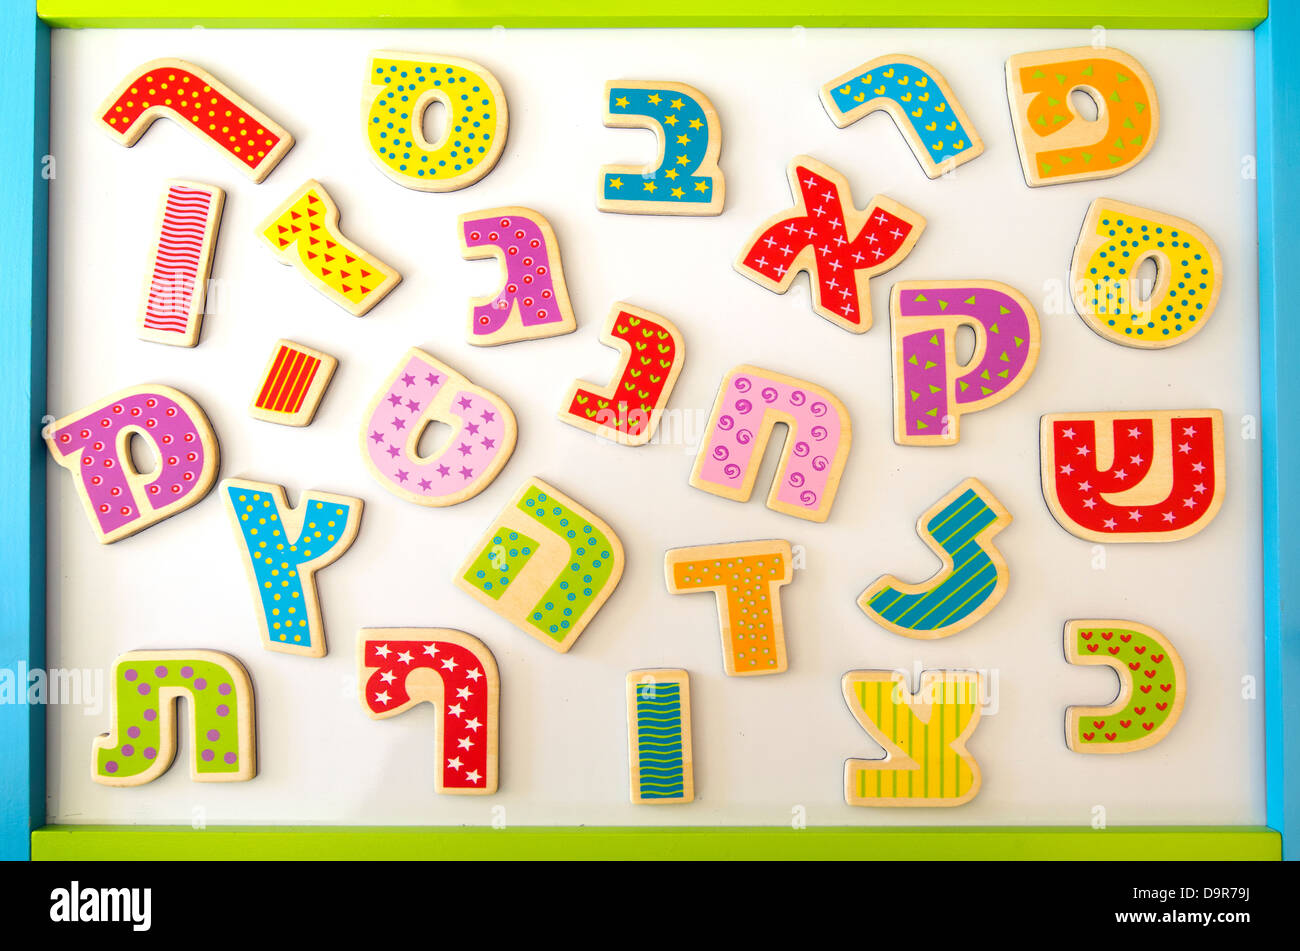 Hebrew alphabet letters and characters background - Stock Image